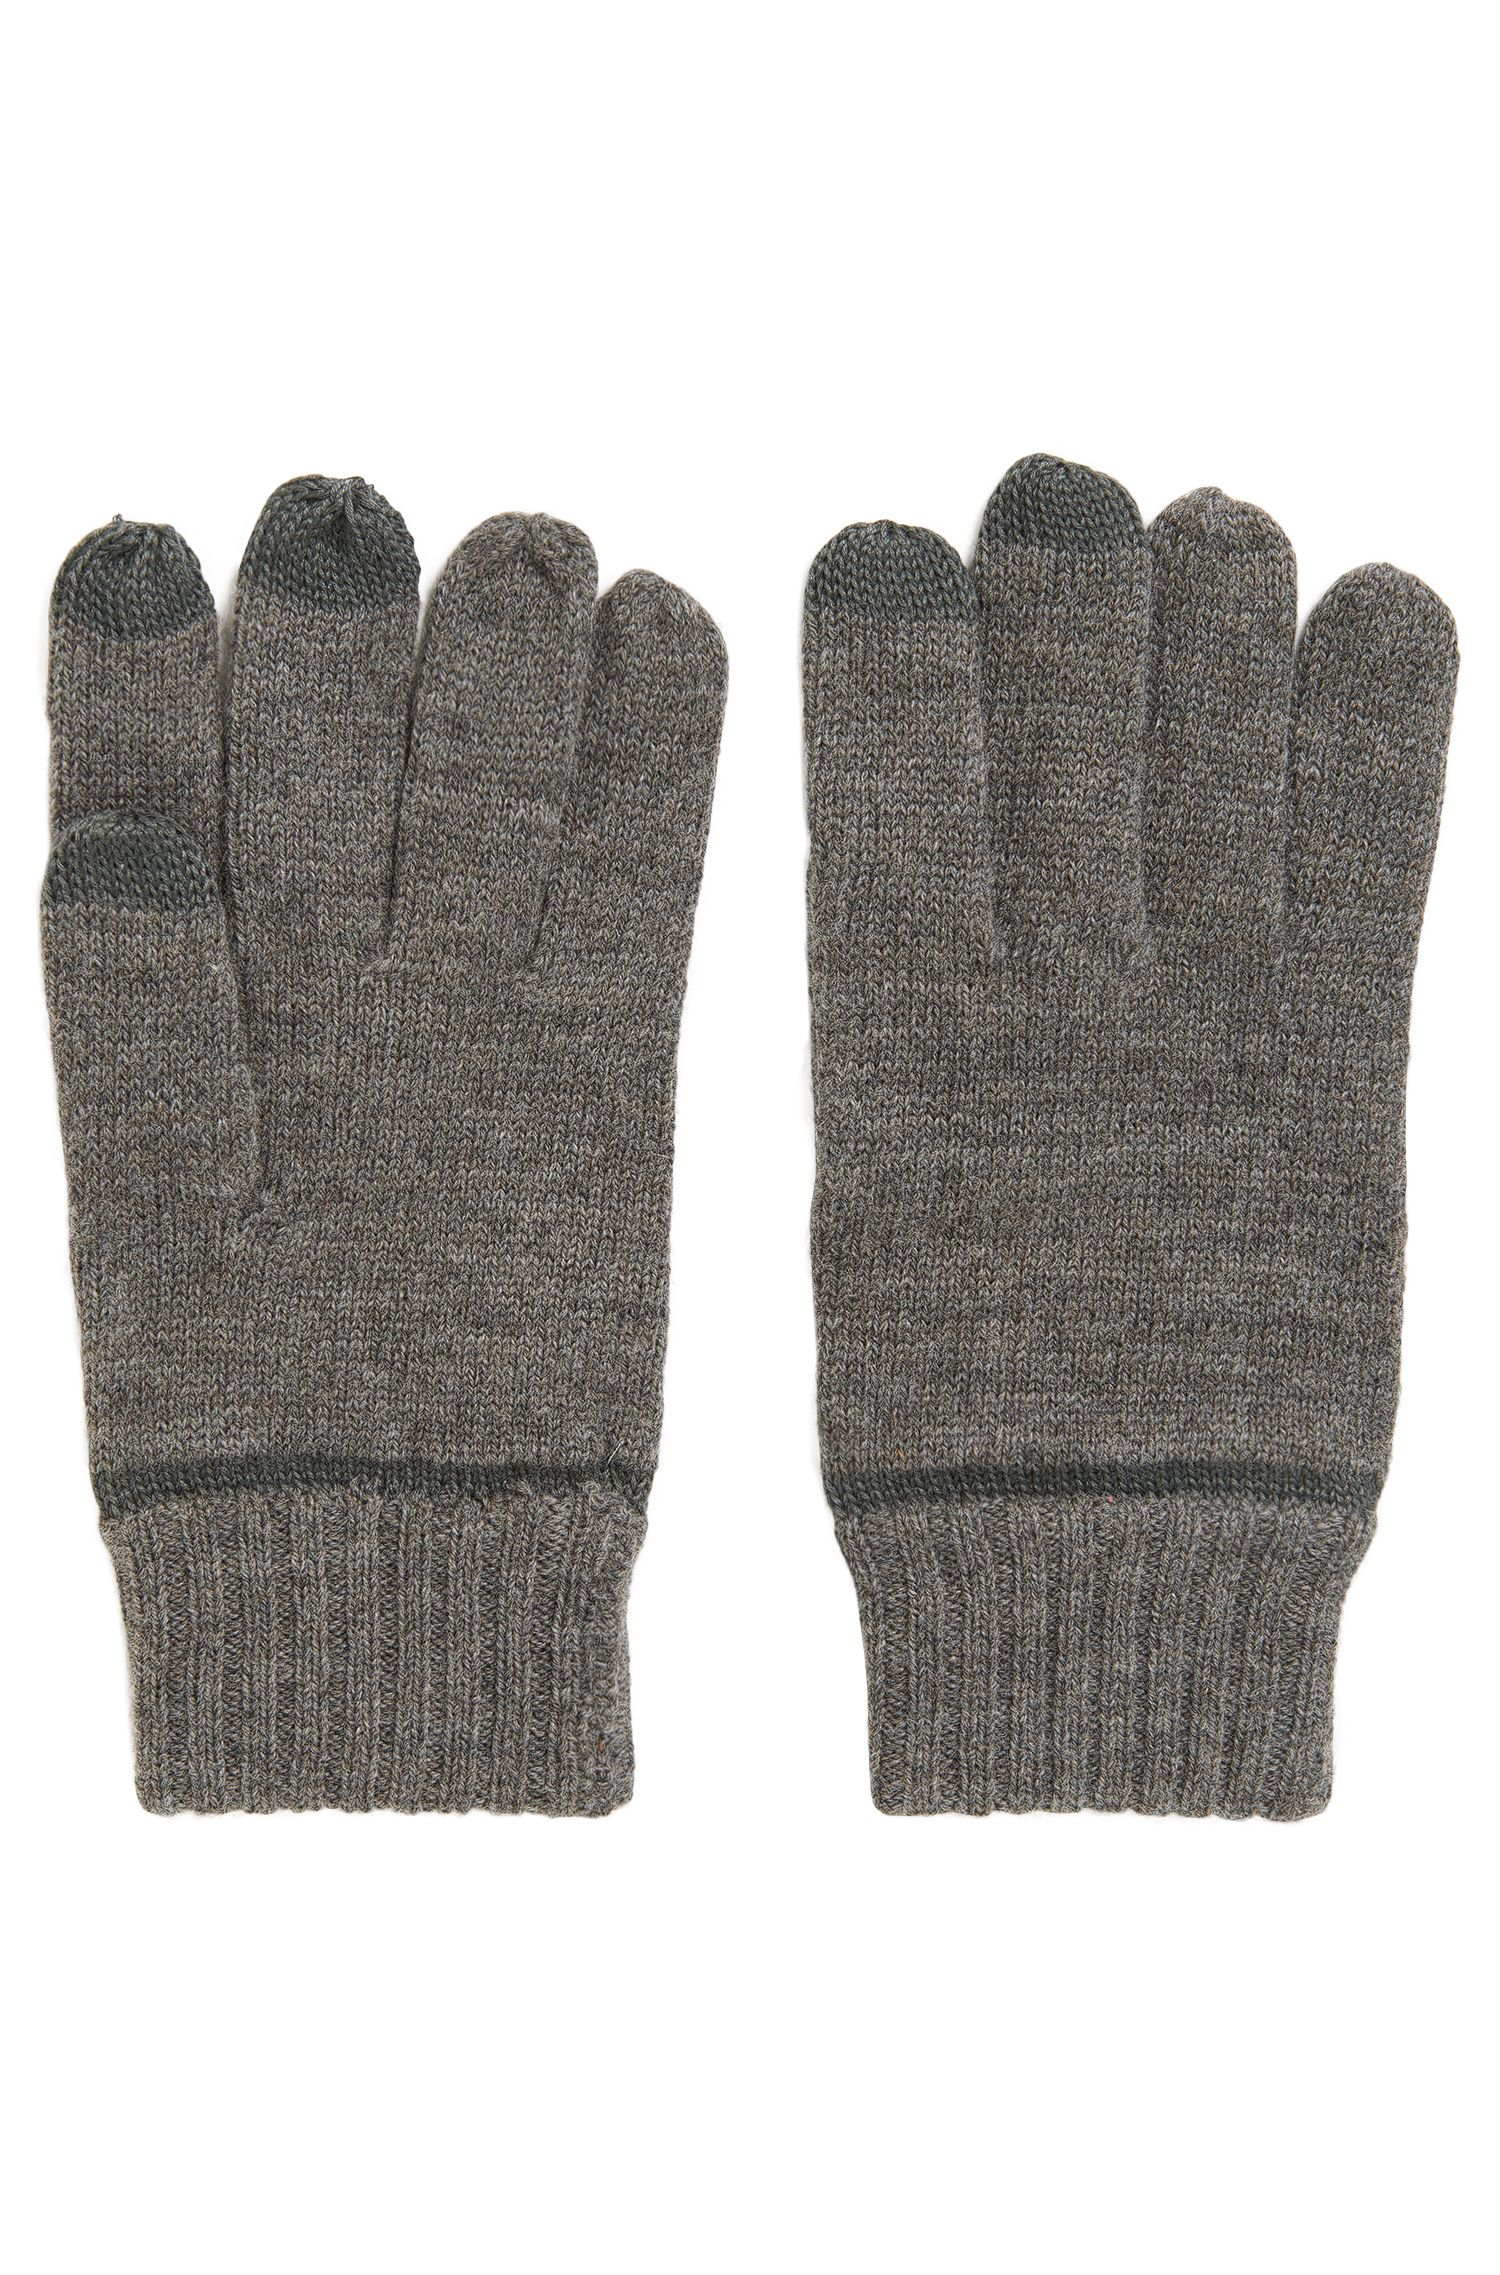 Virgin Wool Blend Tech Gloves | Graas